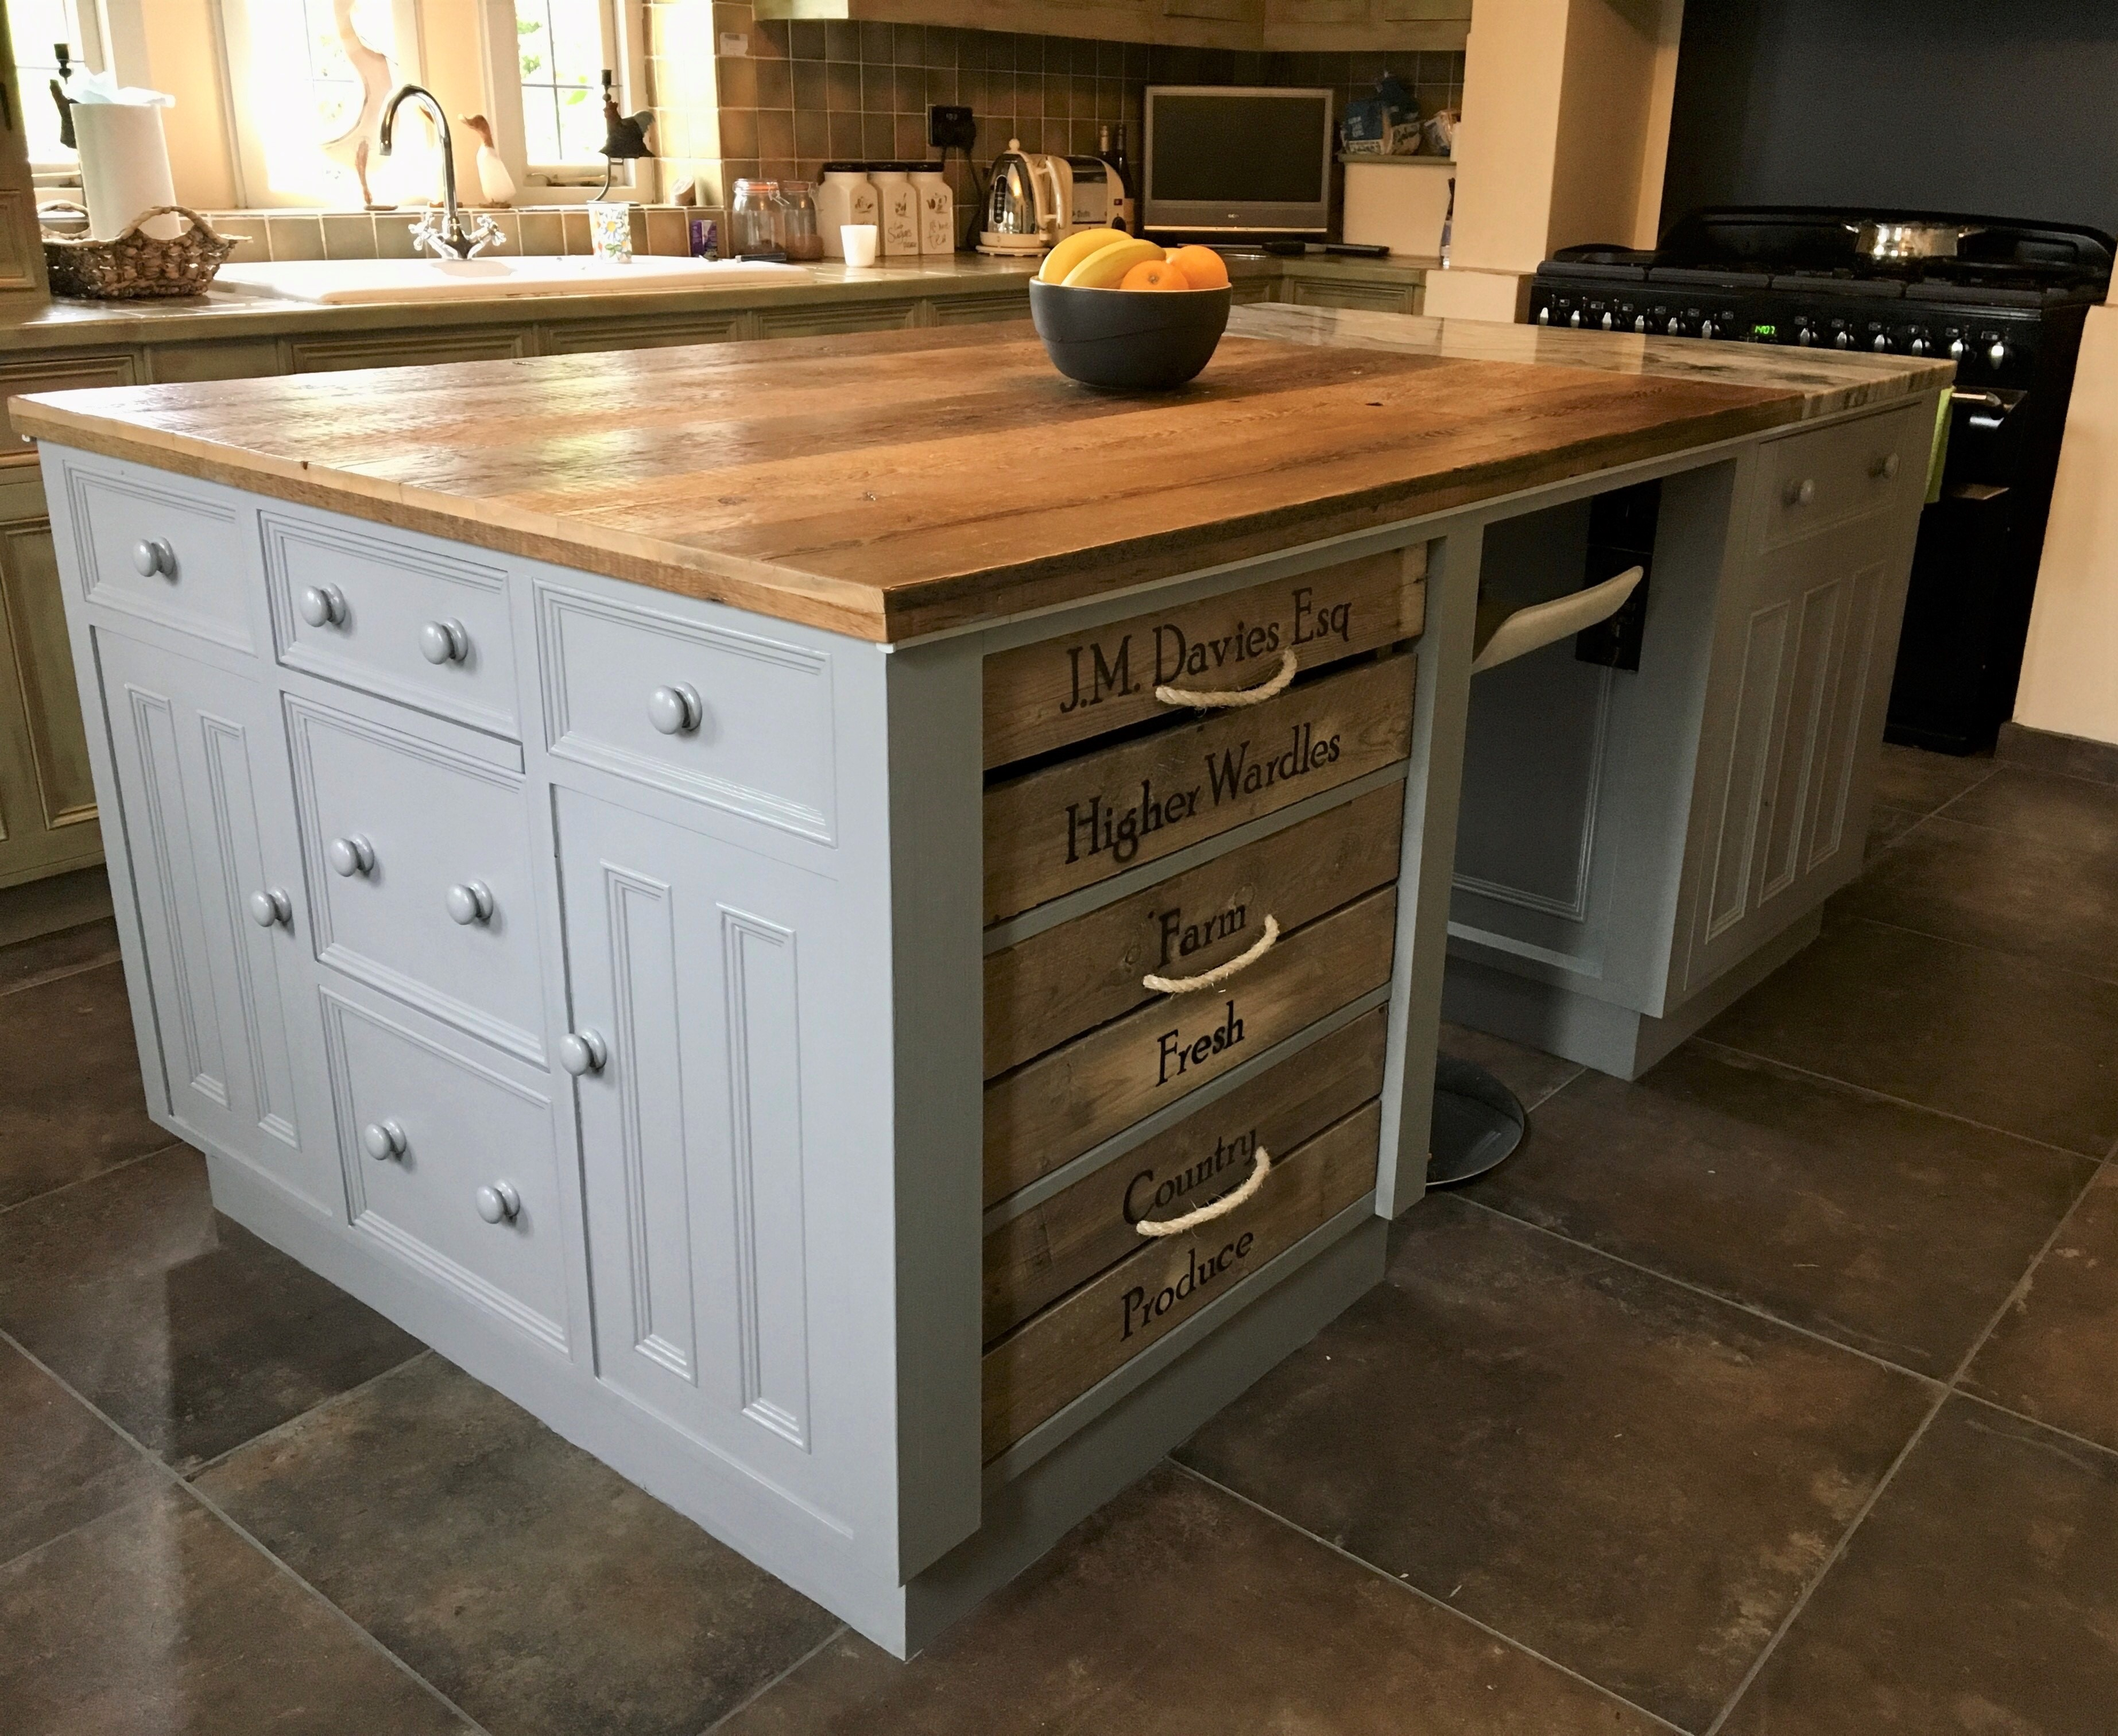 Genuine Victorian reclaimed floorboards are perfect for kitchen worktops and central islands